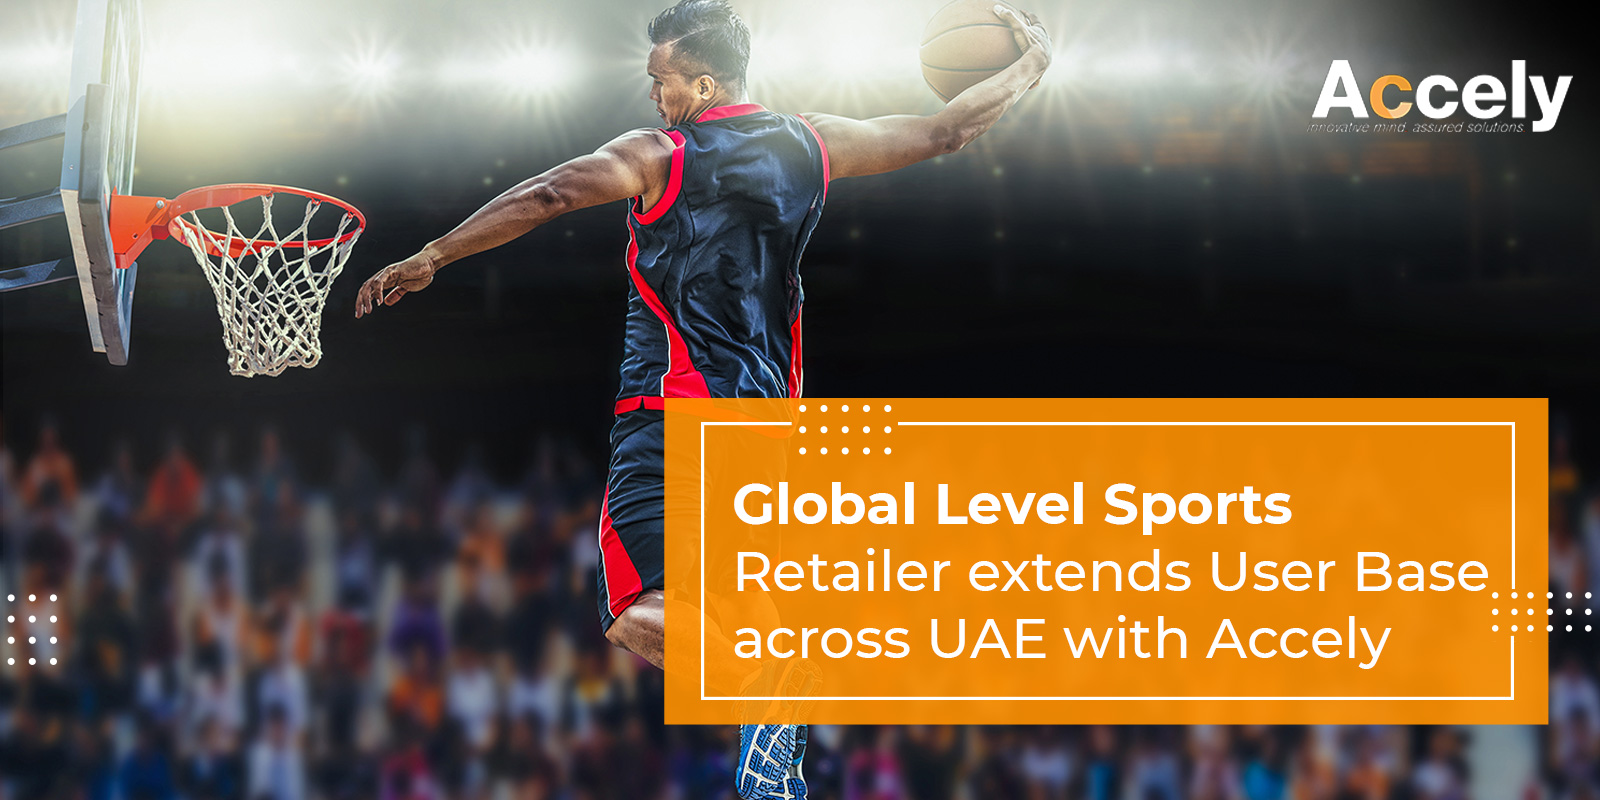 Global Level Sports Retailer extends User Base across UAE with Accely